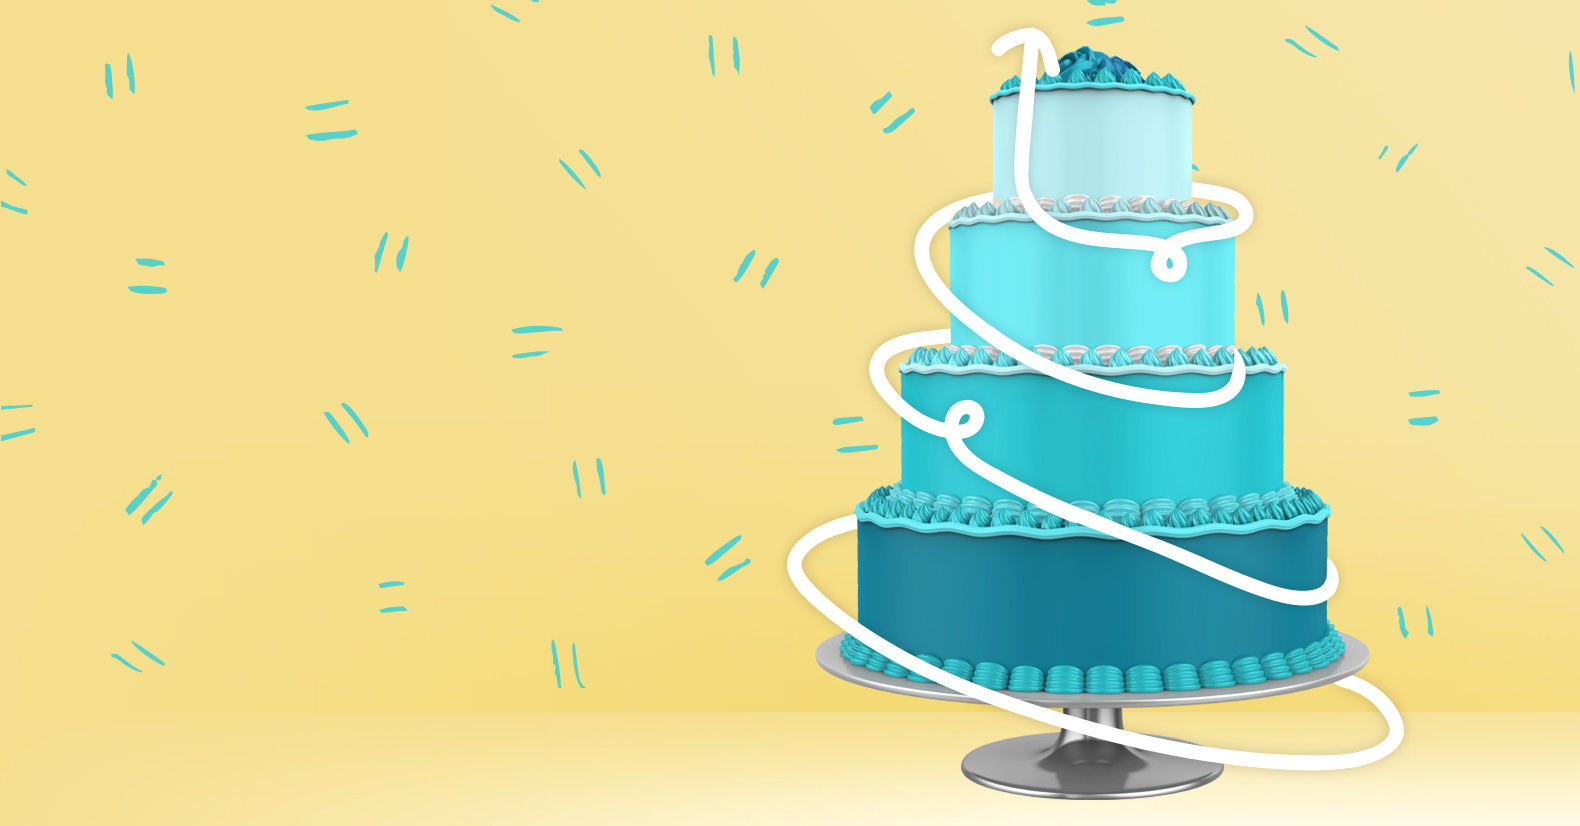 Tiered cake example for how to build a sales funnel